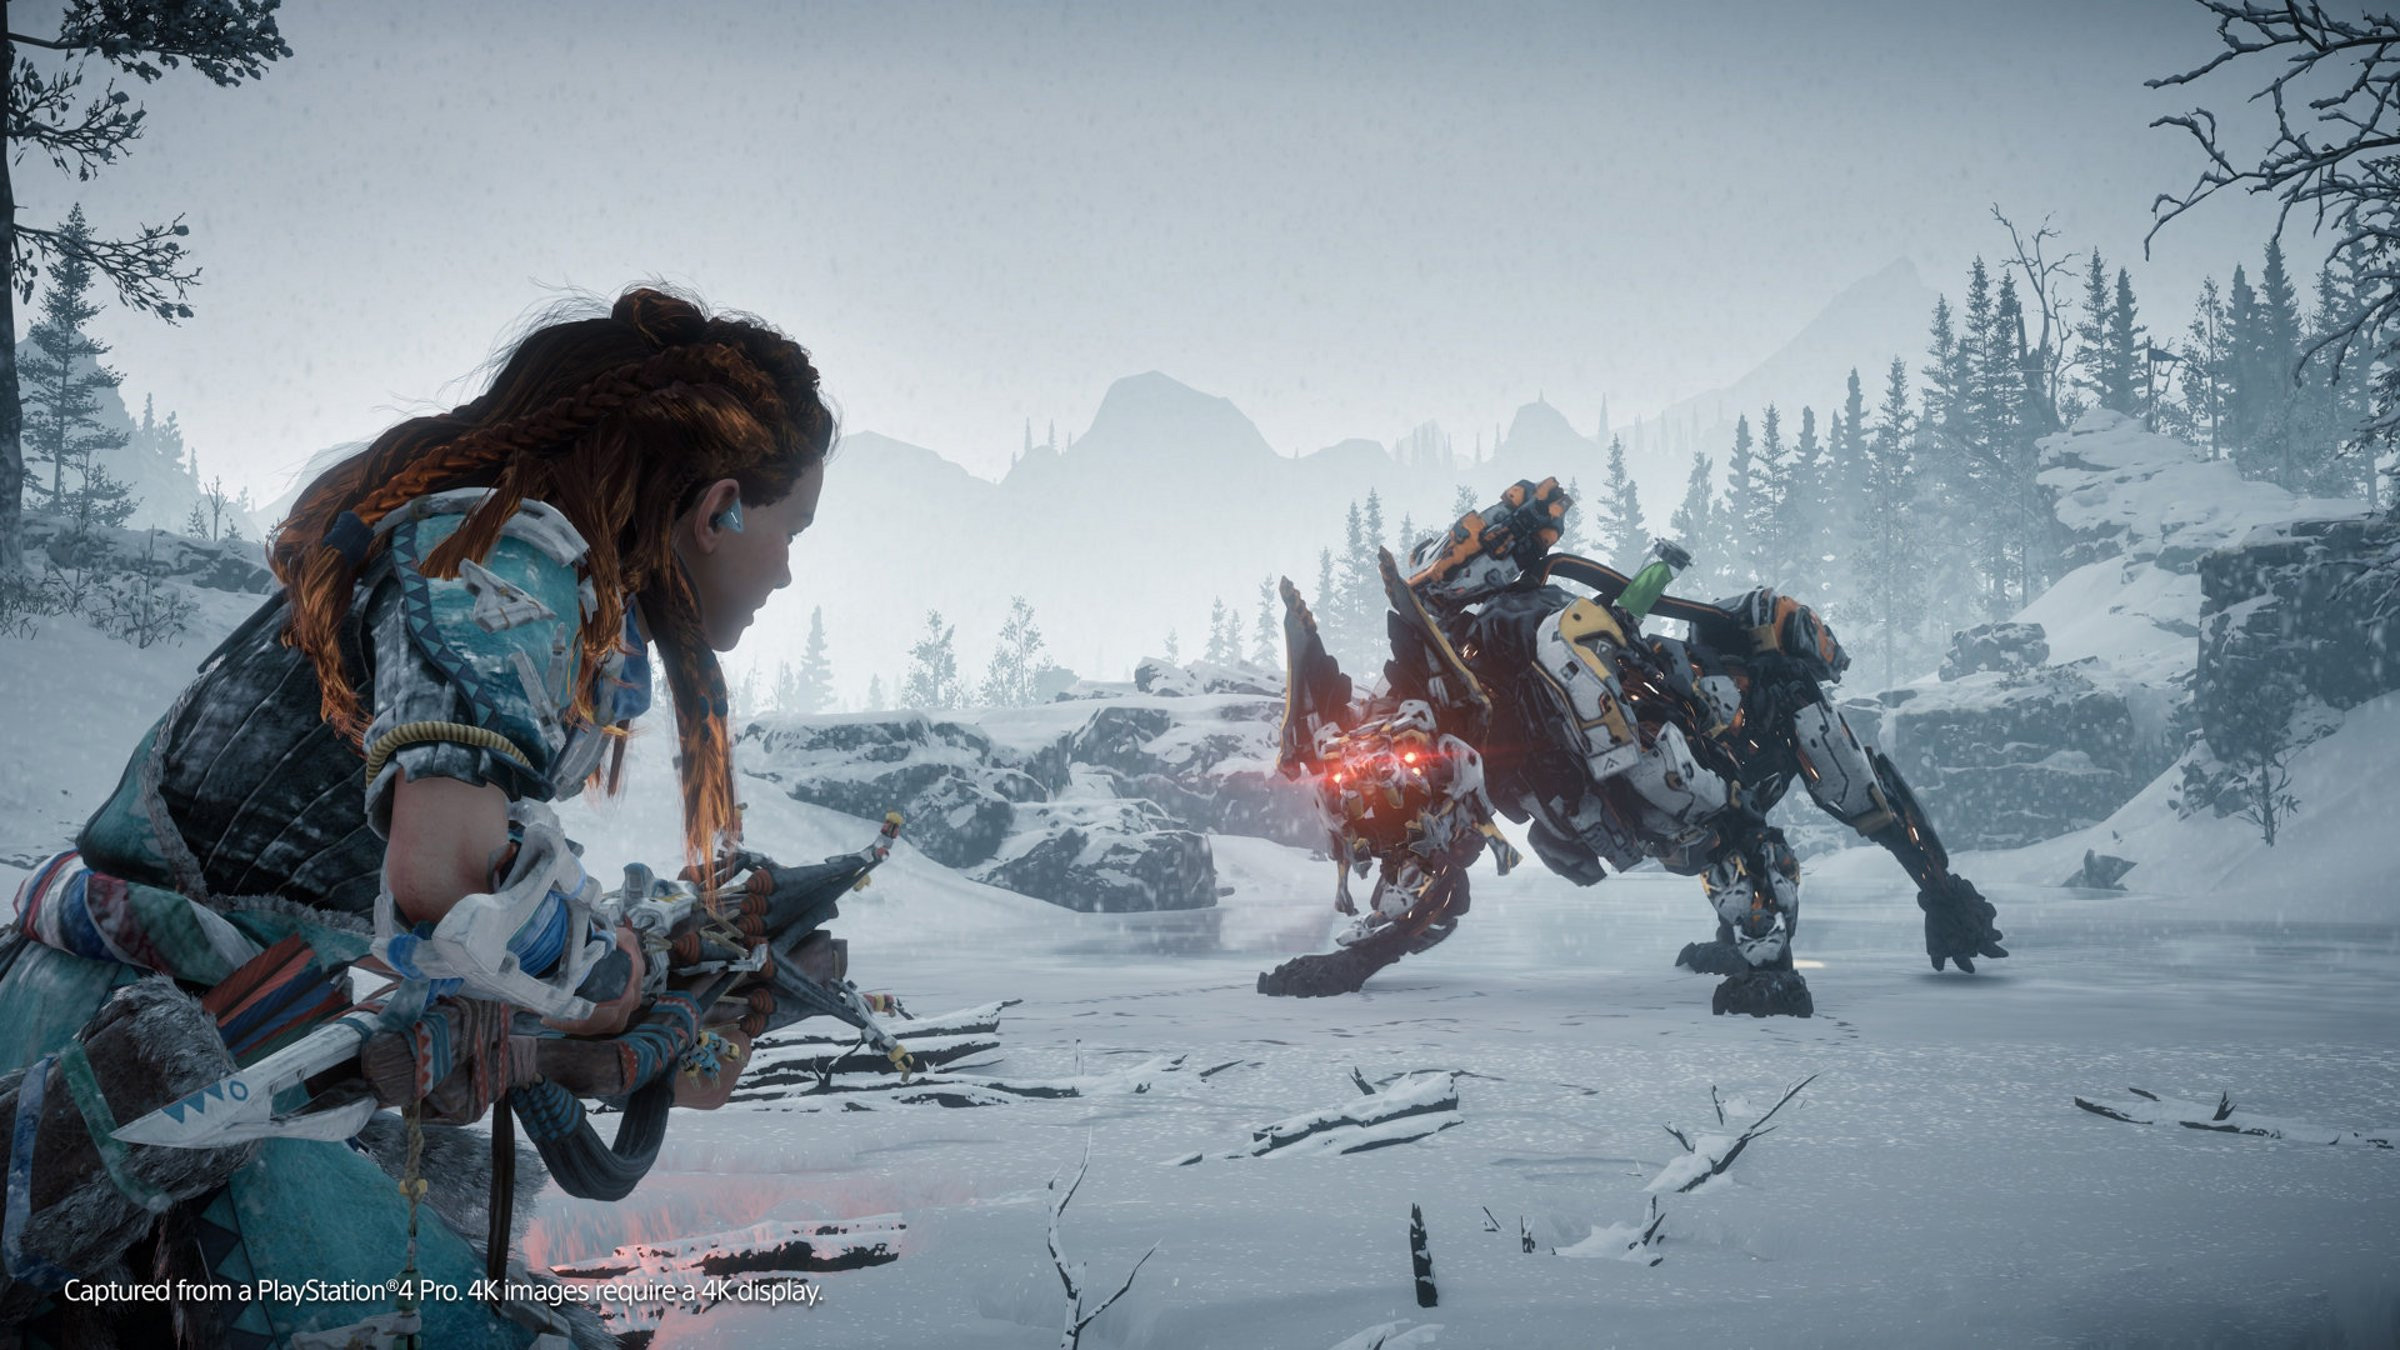 It's your last chance to claim Horizon Zero Dawn for free on the PlayStation Store screenshot